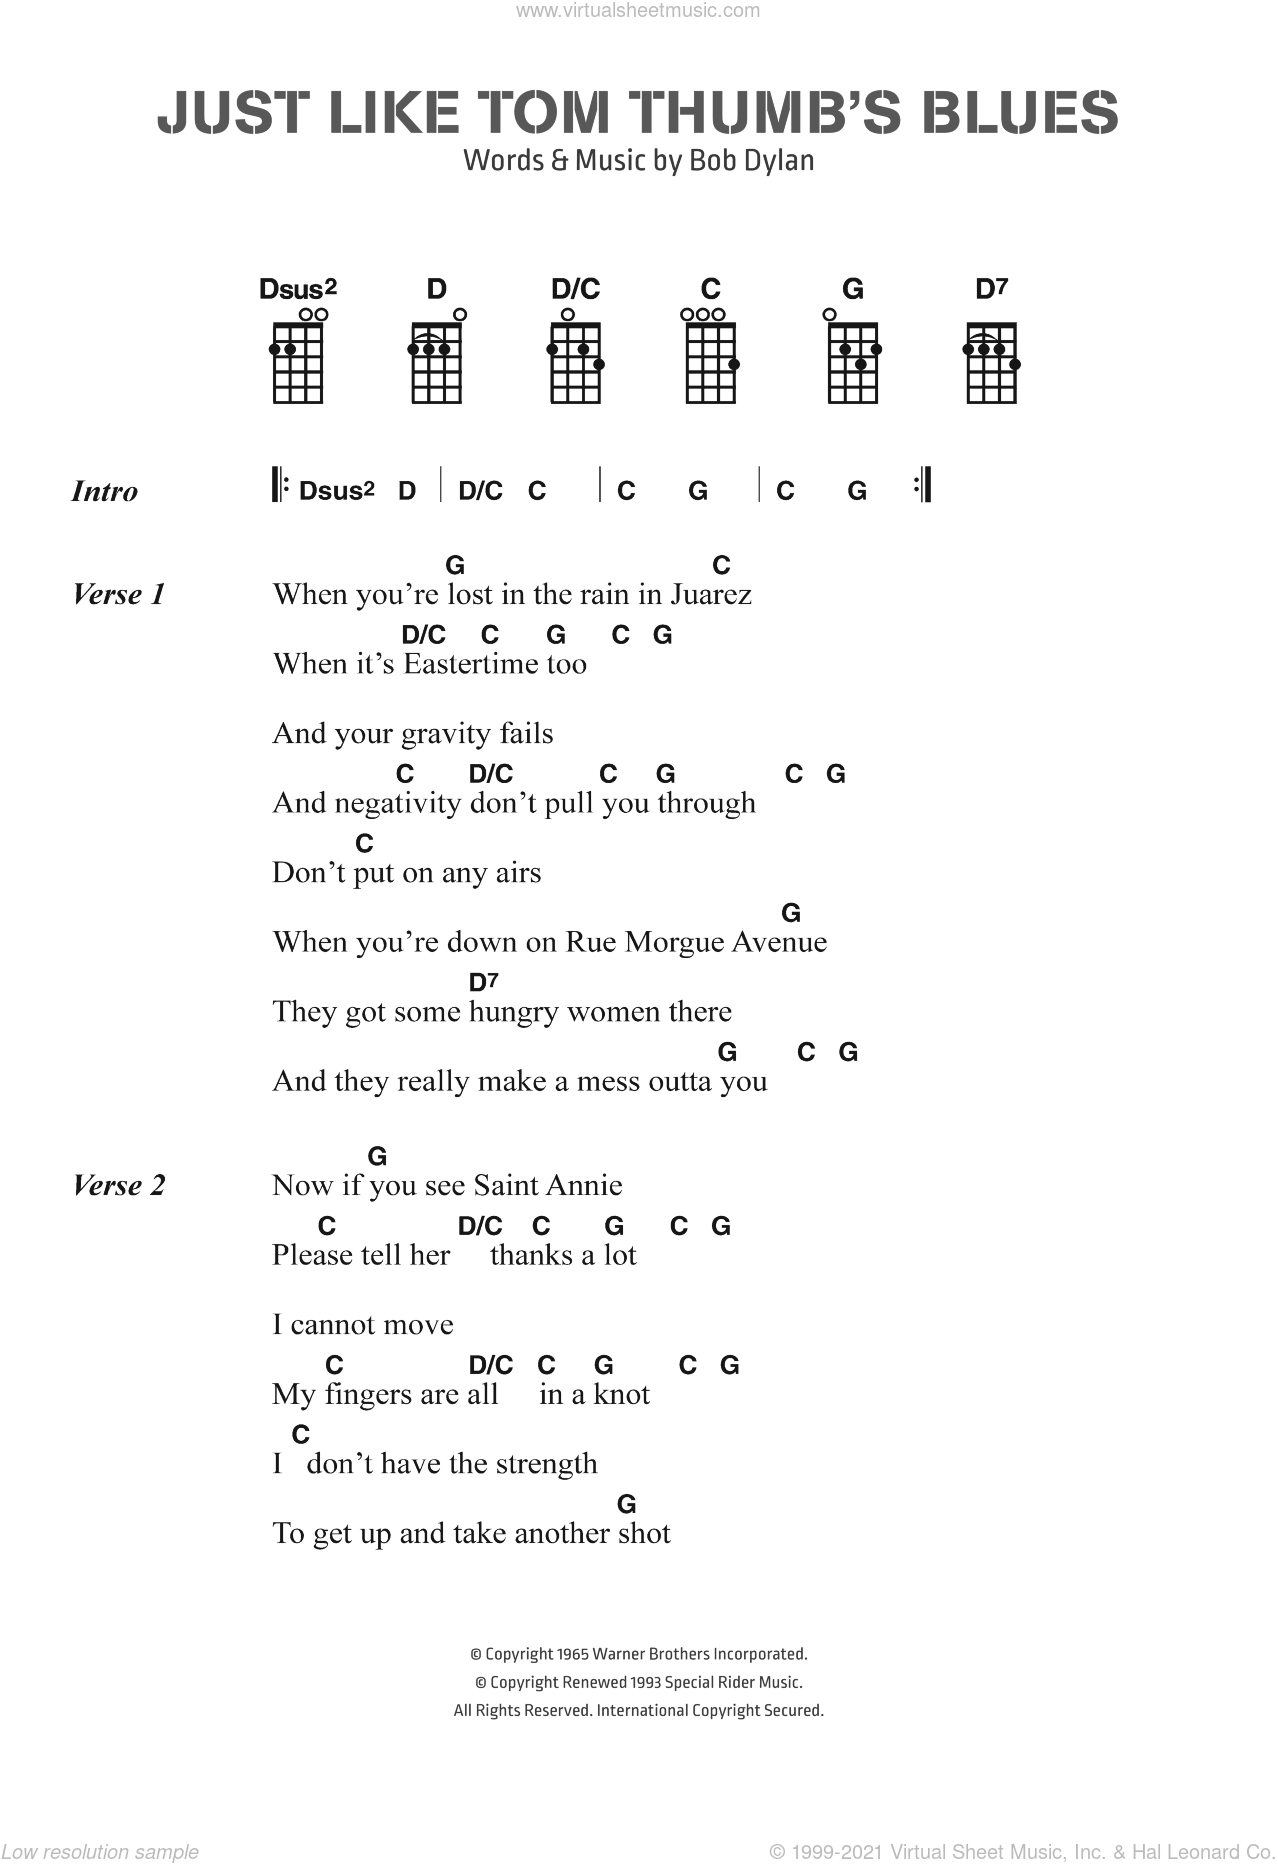 Just Like Tom Thumb's Blues sheet music for voice, piano or guitar by Bob Dylan. Score Image Preview.